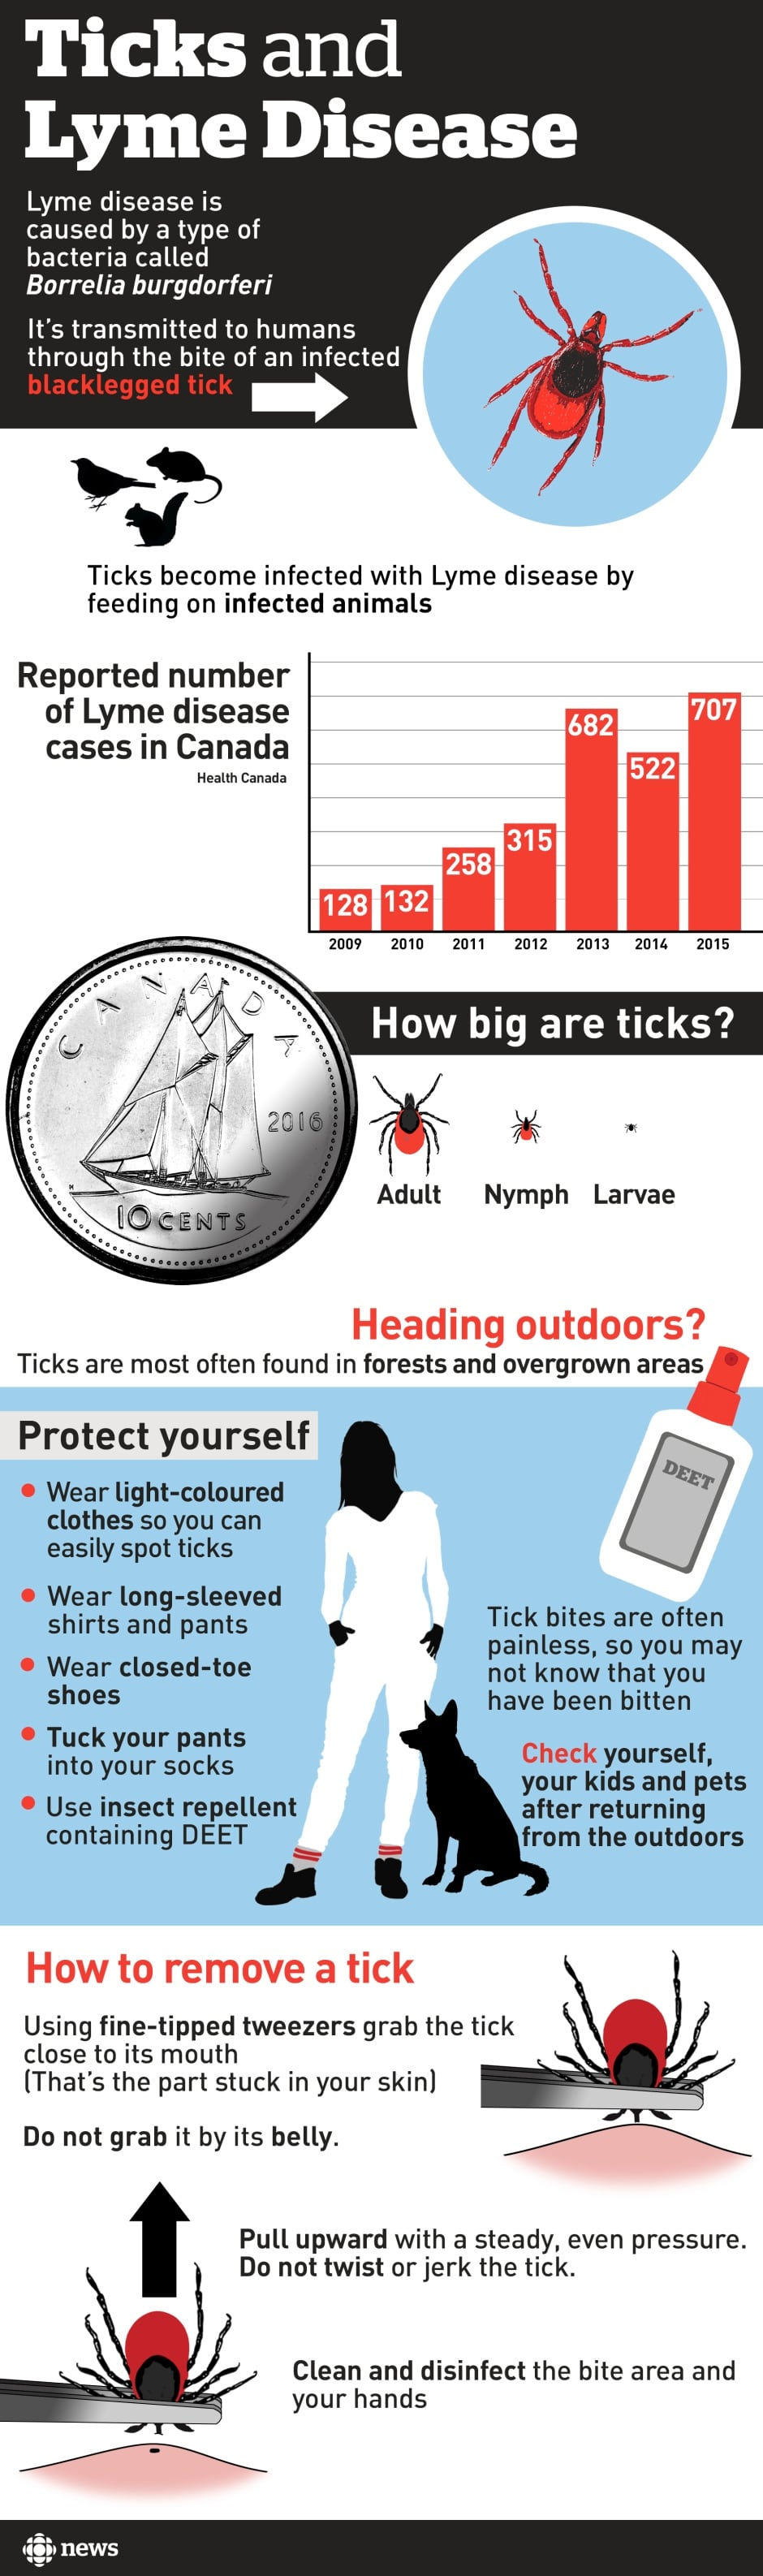 Tick infographic USE THIS ONE